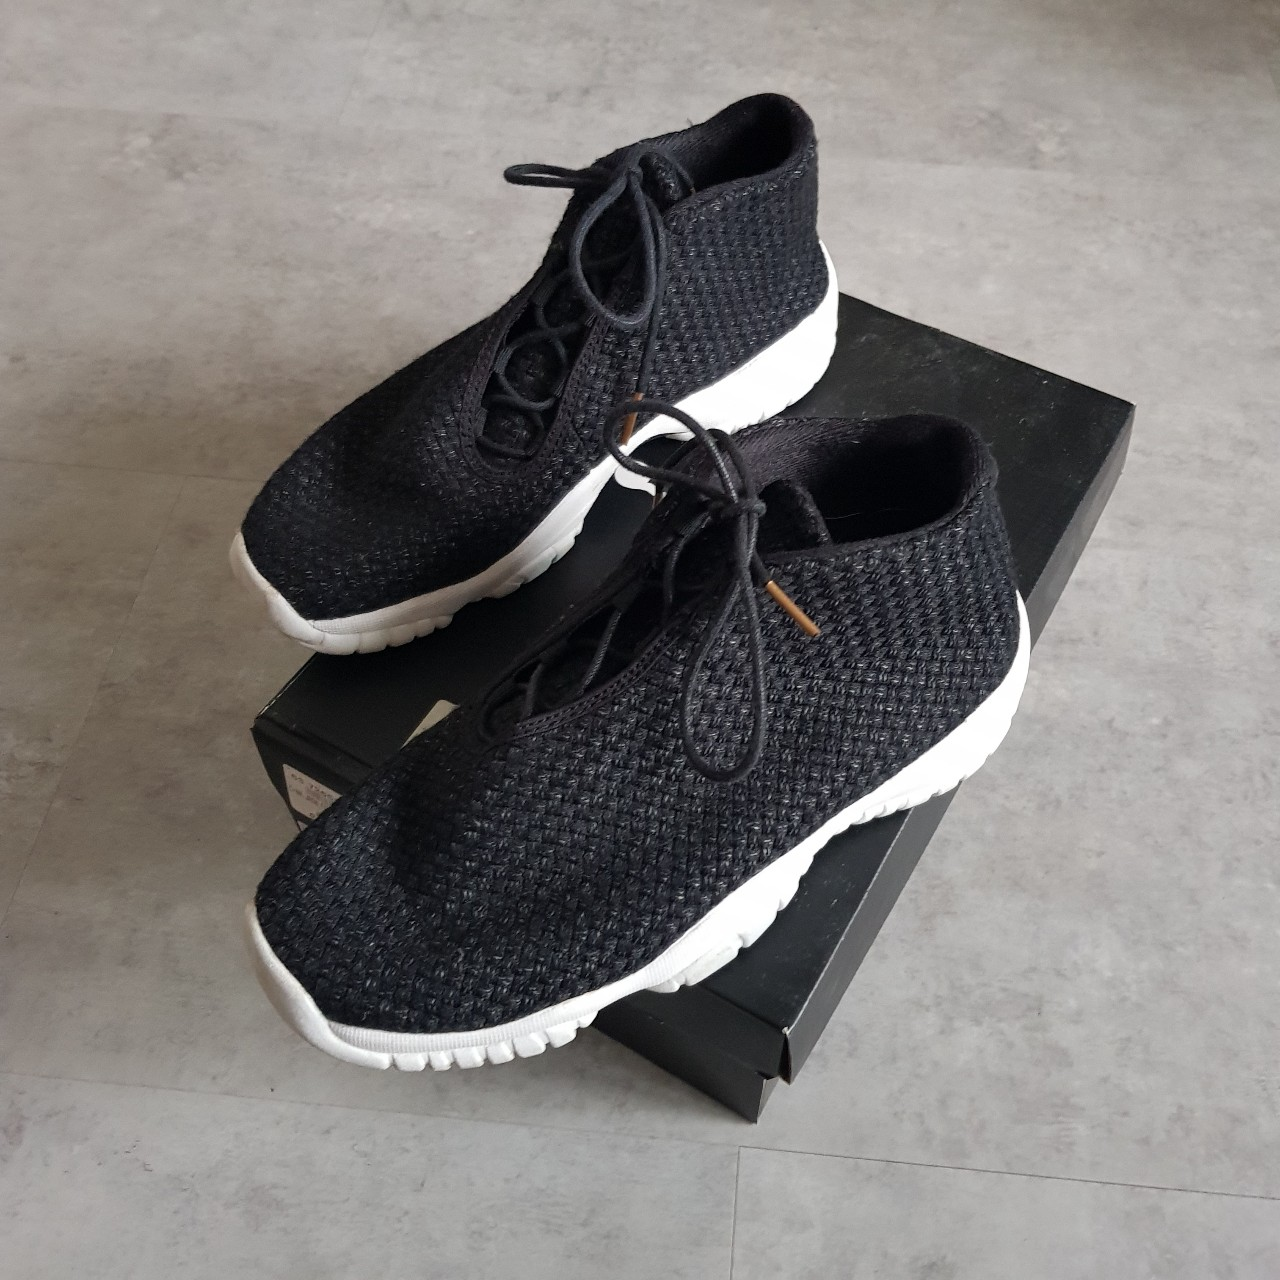 1e84bf2f29 NIKE AIR JORDAN FUTURE GS GB - SIZE 6 - GREAT CONDITION - Depop